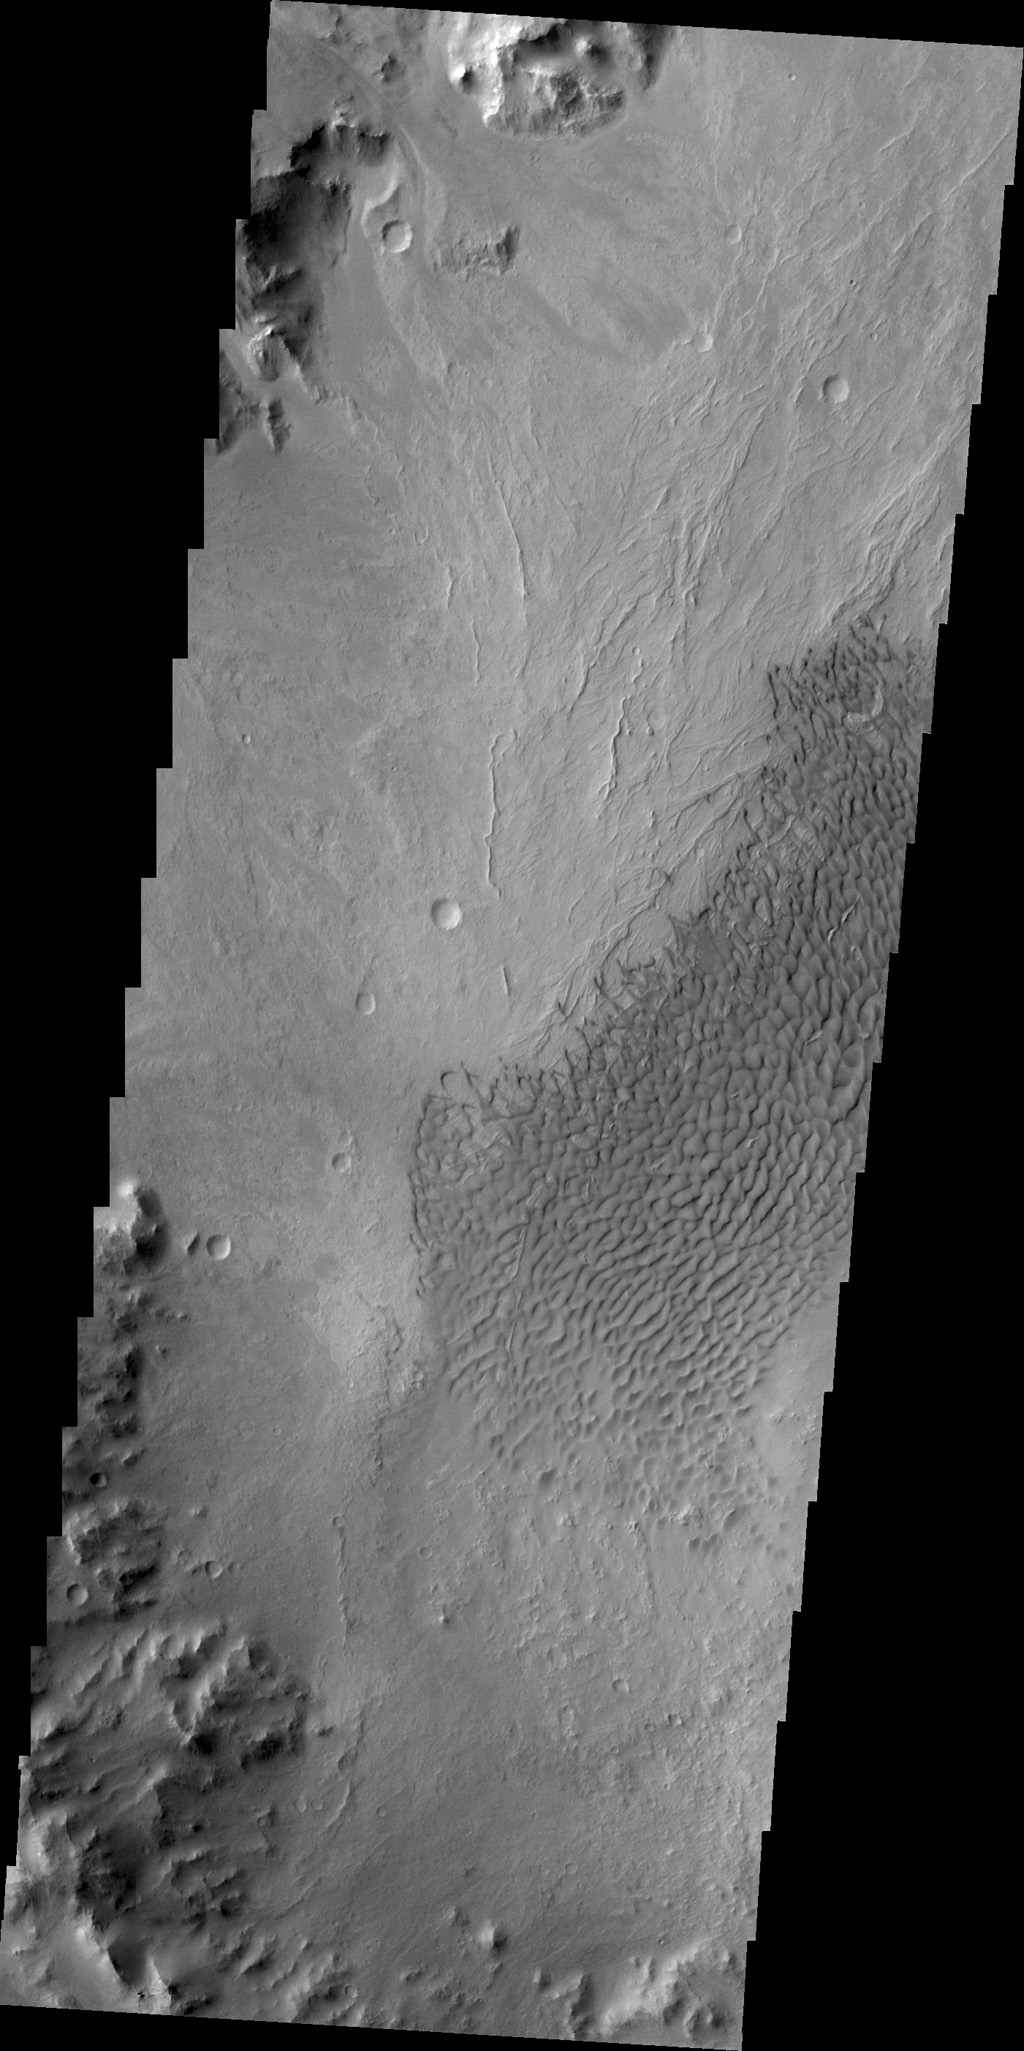 These dunes are located on the floor of an unnamed crater south of Vinogradov Crater. This image was captured by NASA's 2001 Mars Odyssey spacecraft.